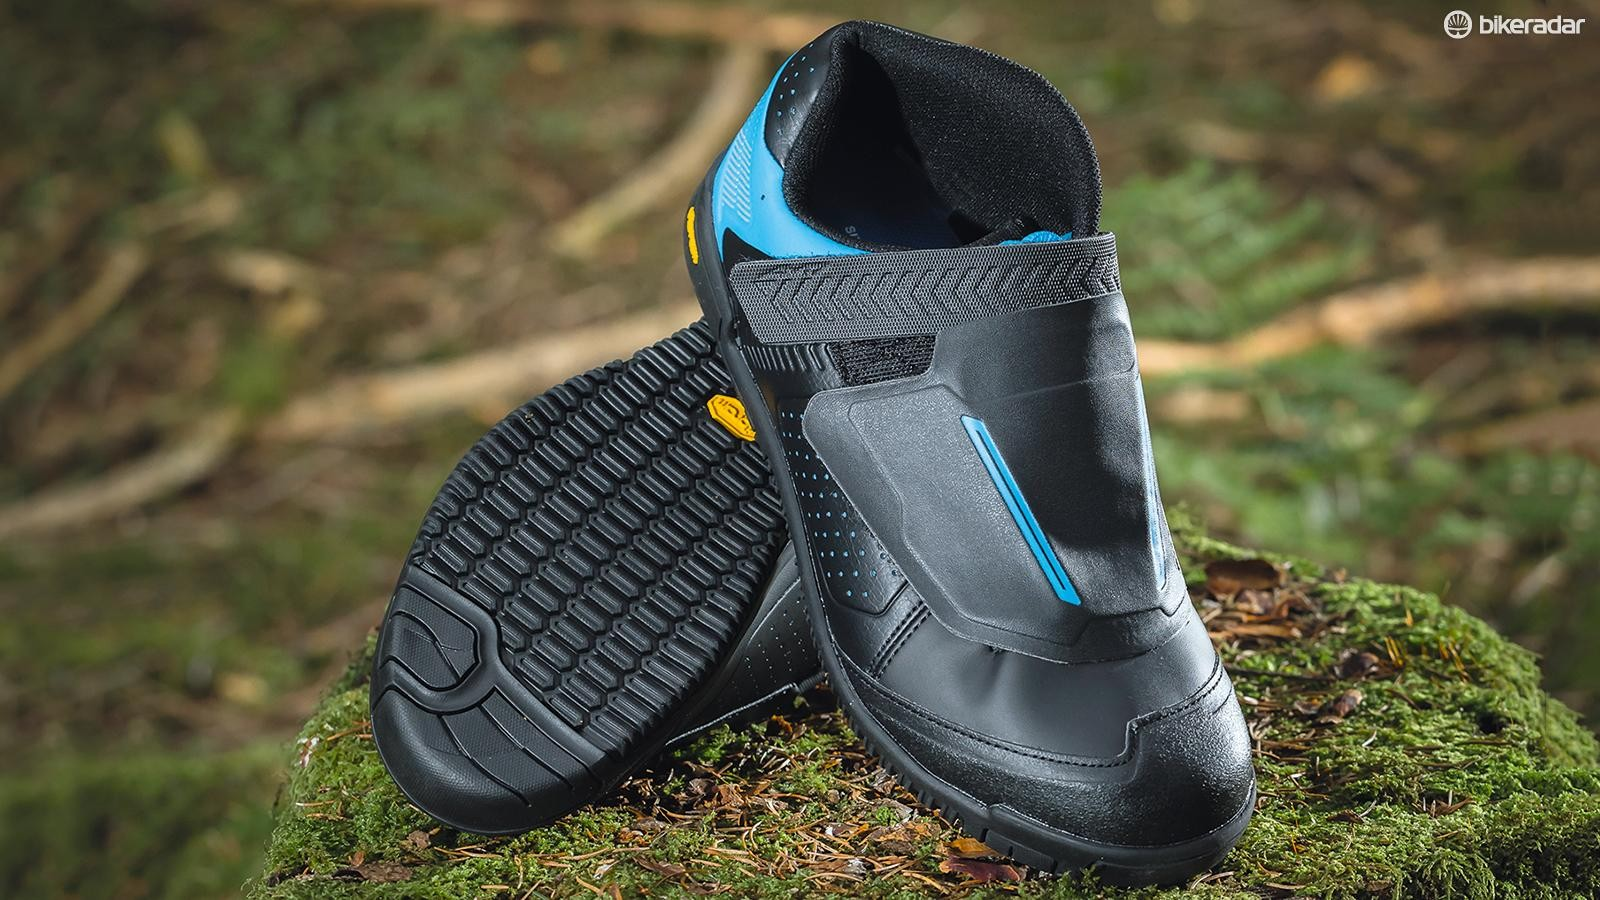 Shimano's AM7 MTB shoes are mostly superb, but aren't the grippiest especially in the wet